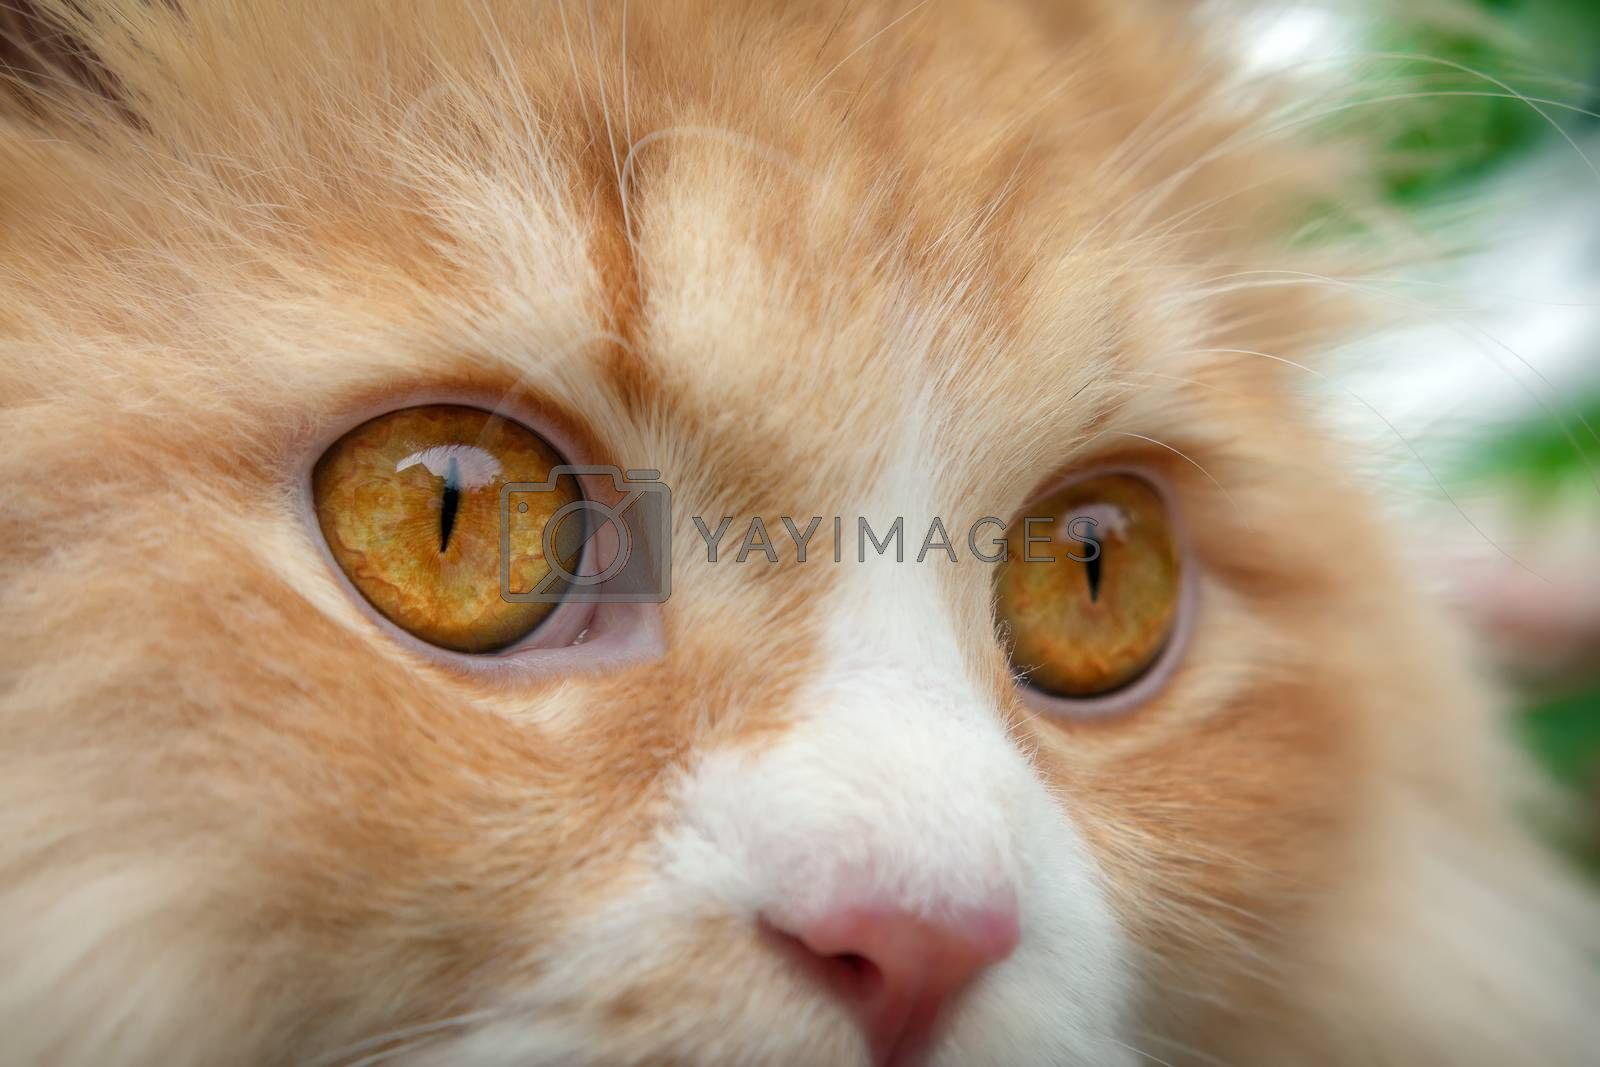 Fully Dilated Eye Pupil on an Orange Persian Cat. by cseika